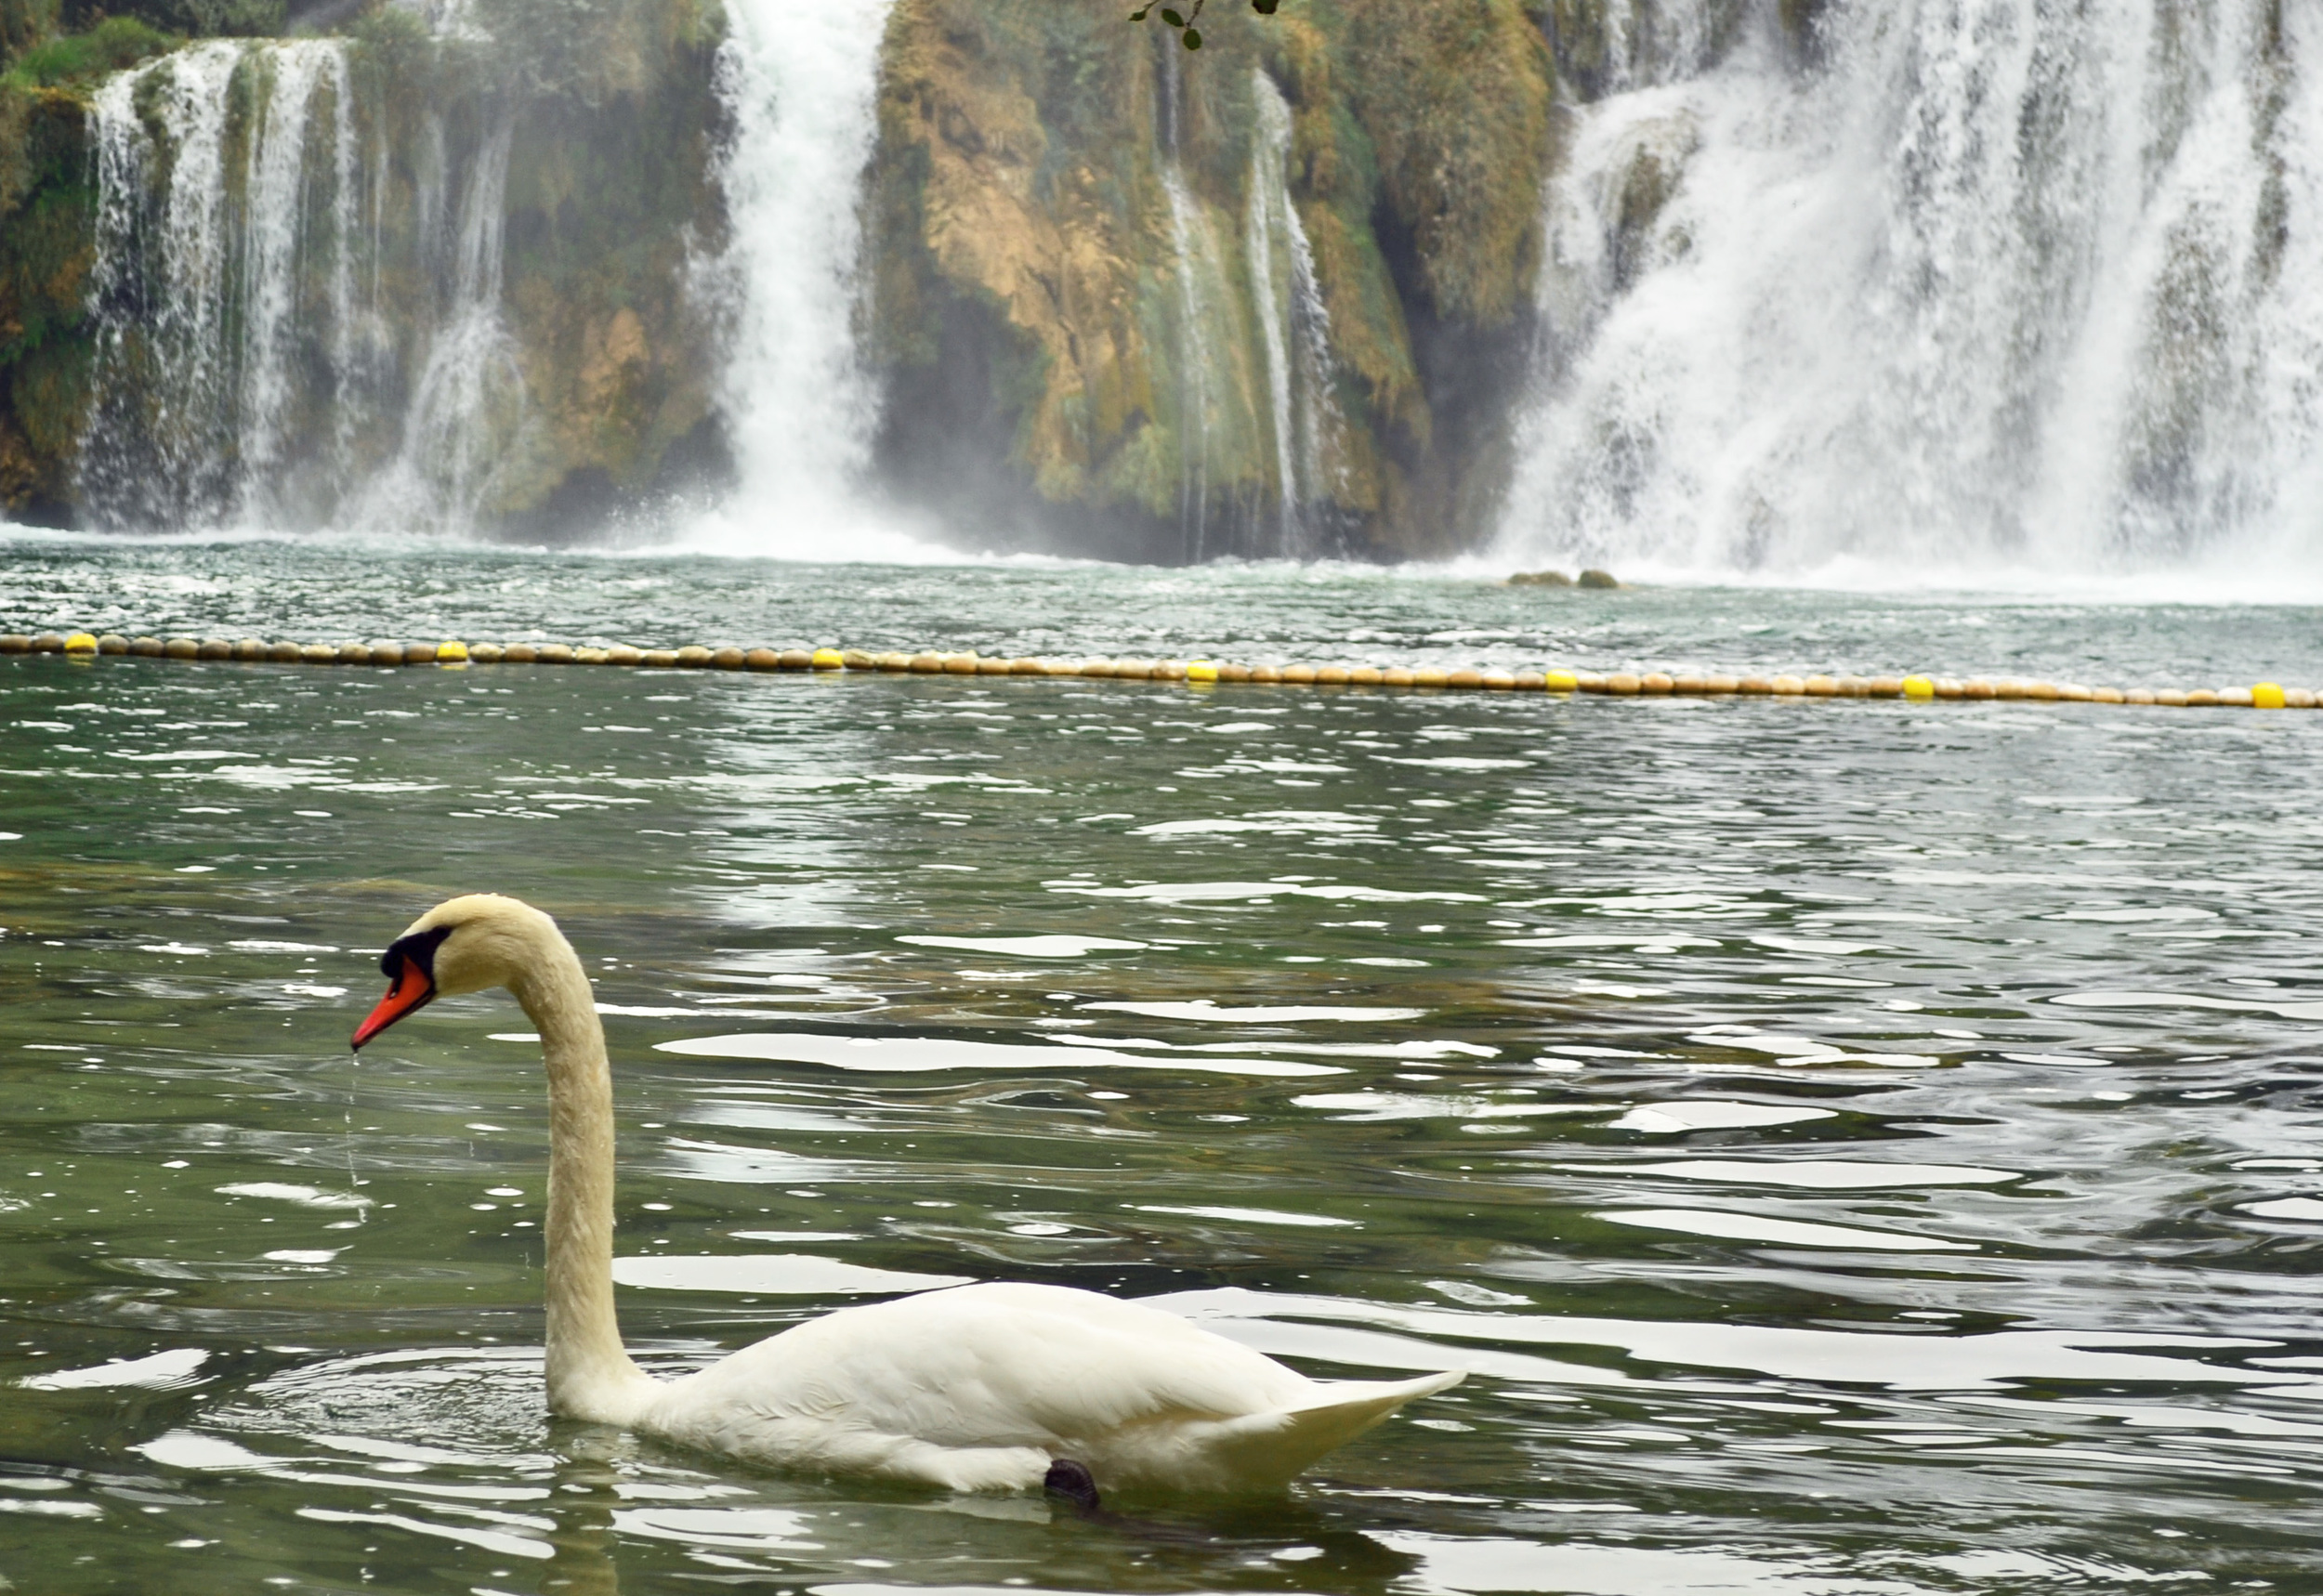 Swan in Croatia Krka